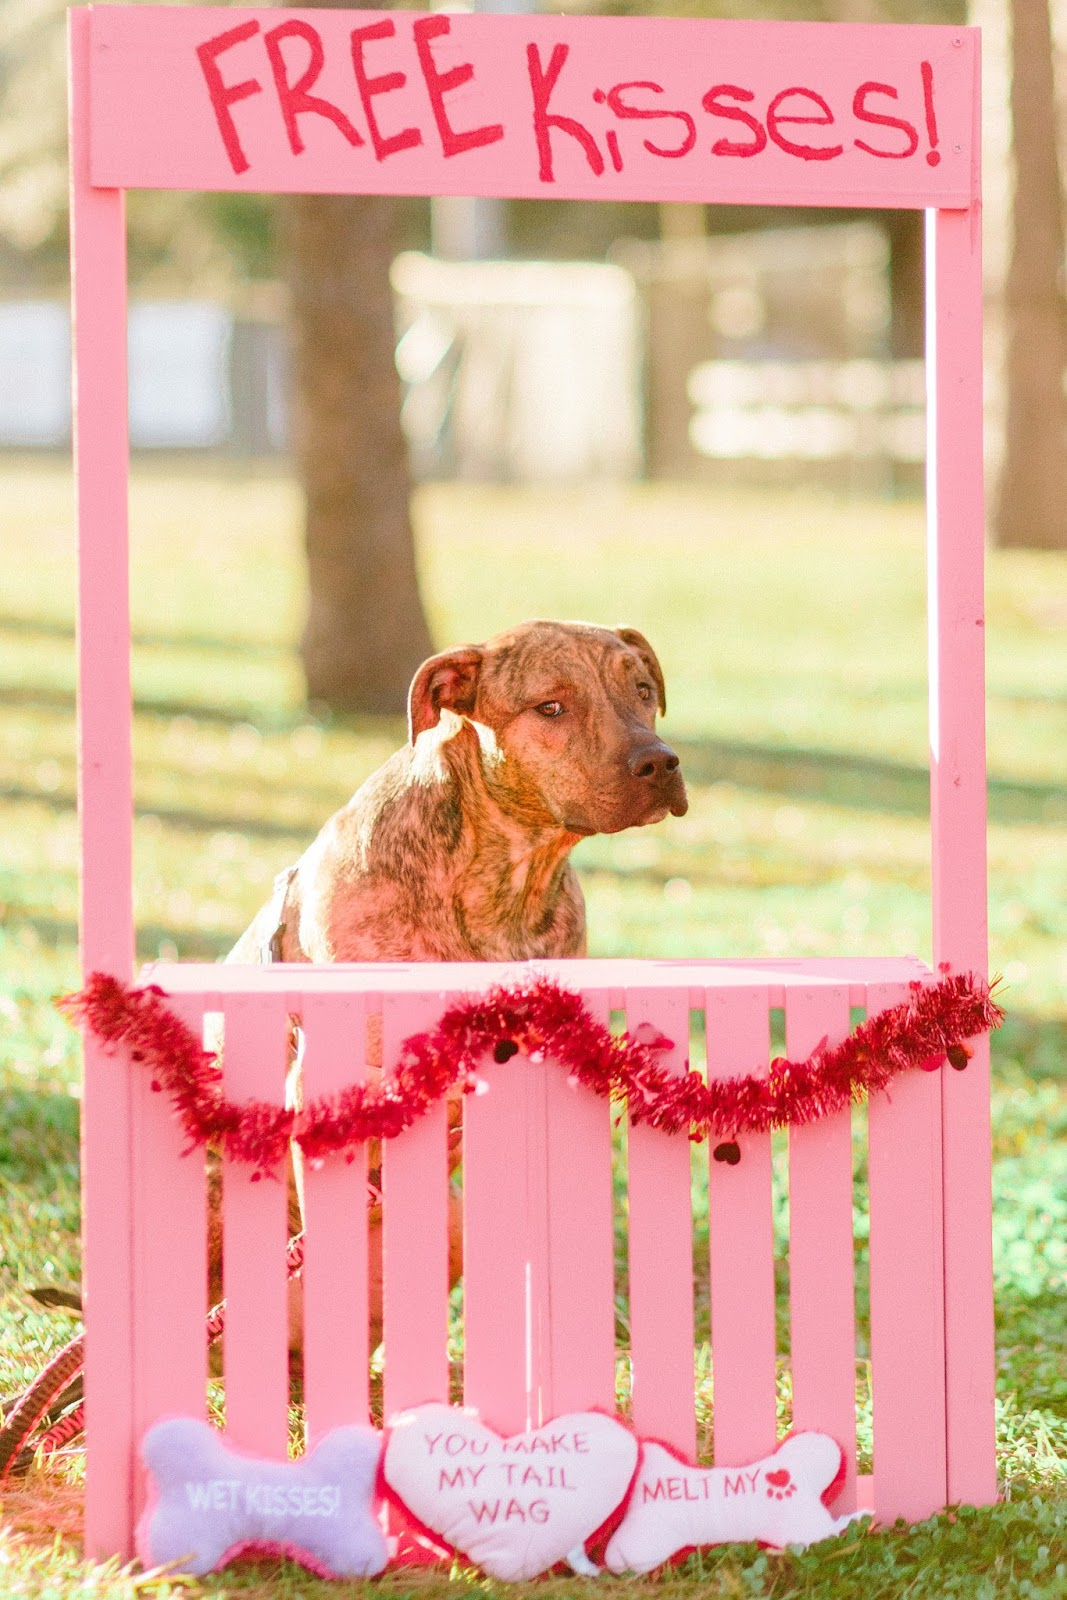 Brindle dog in Valentine's day kissing booth